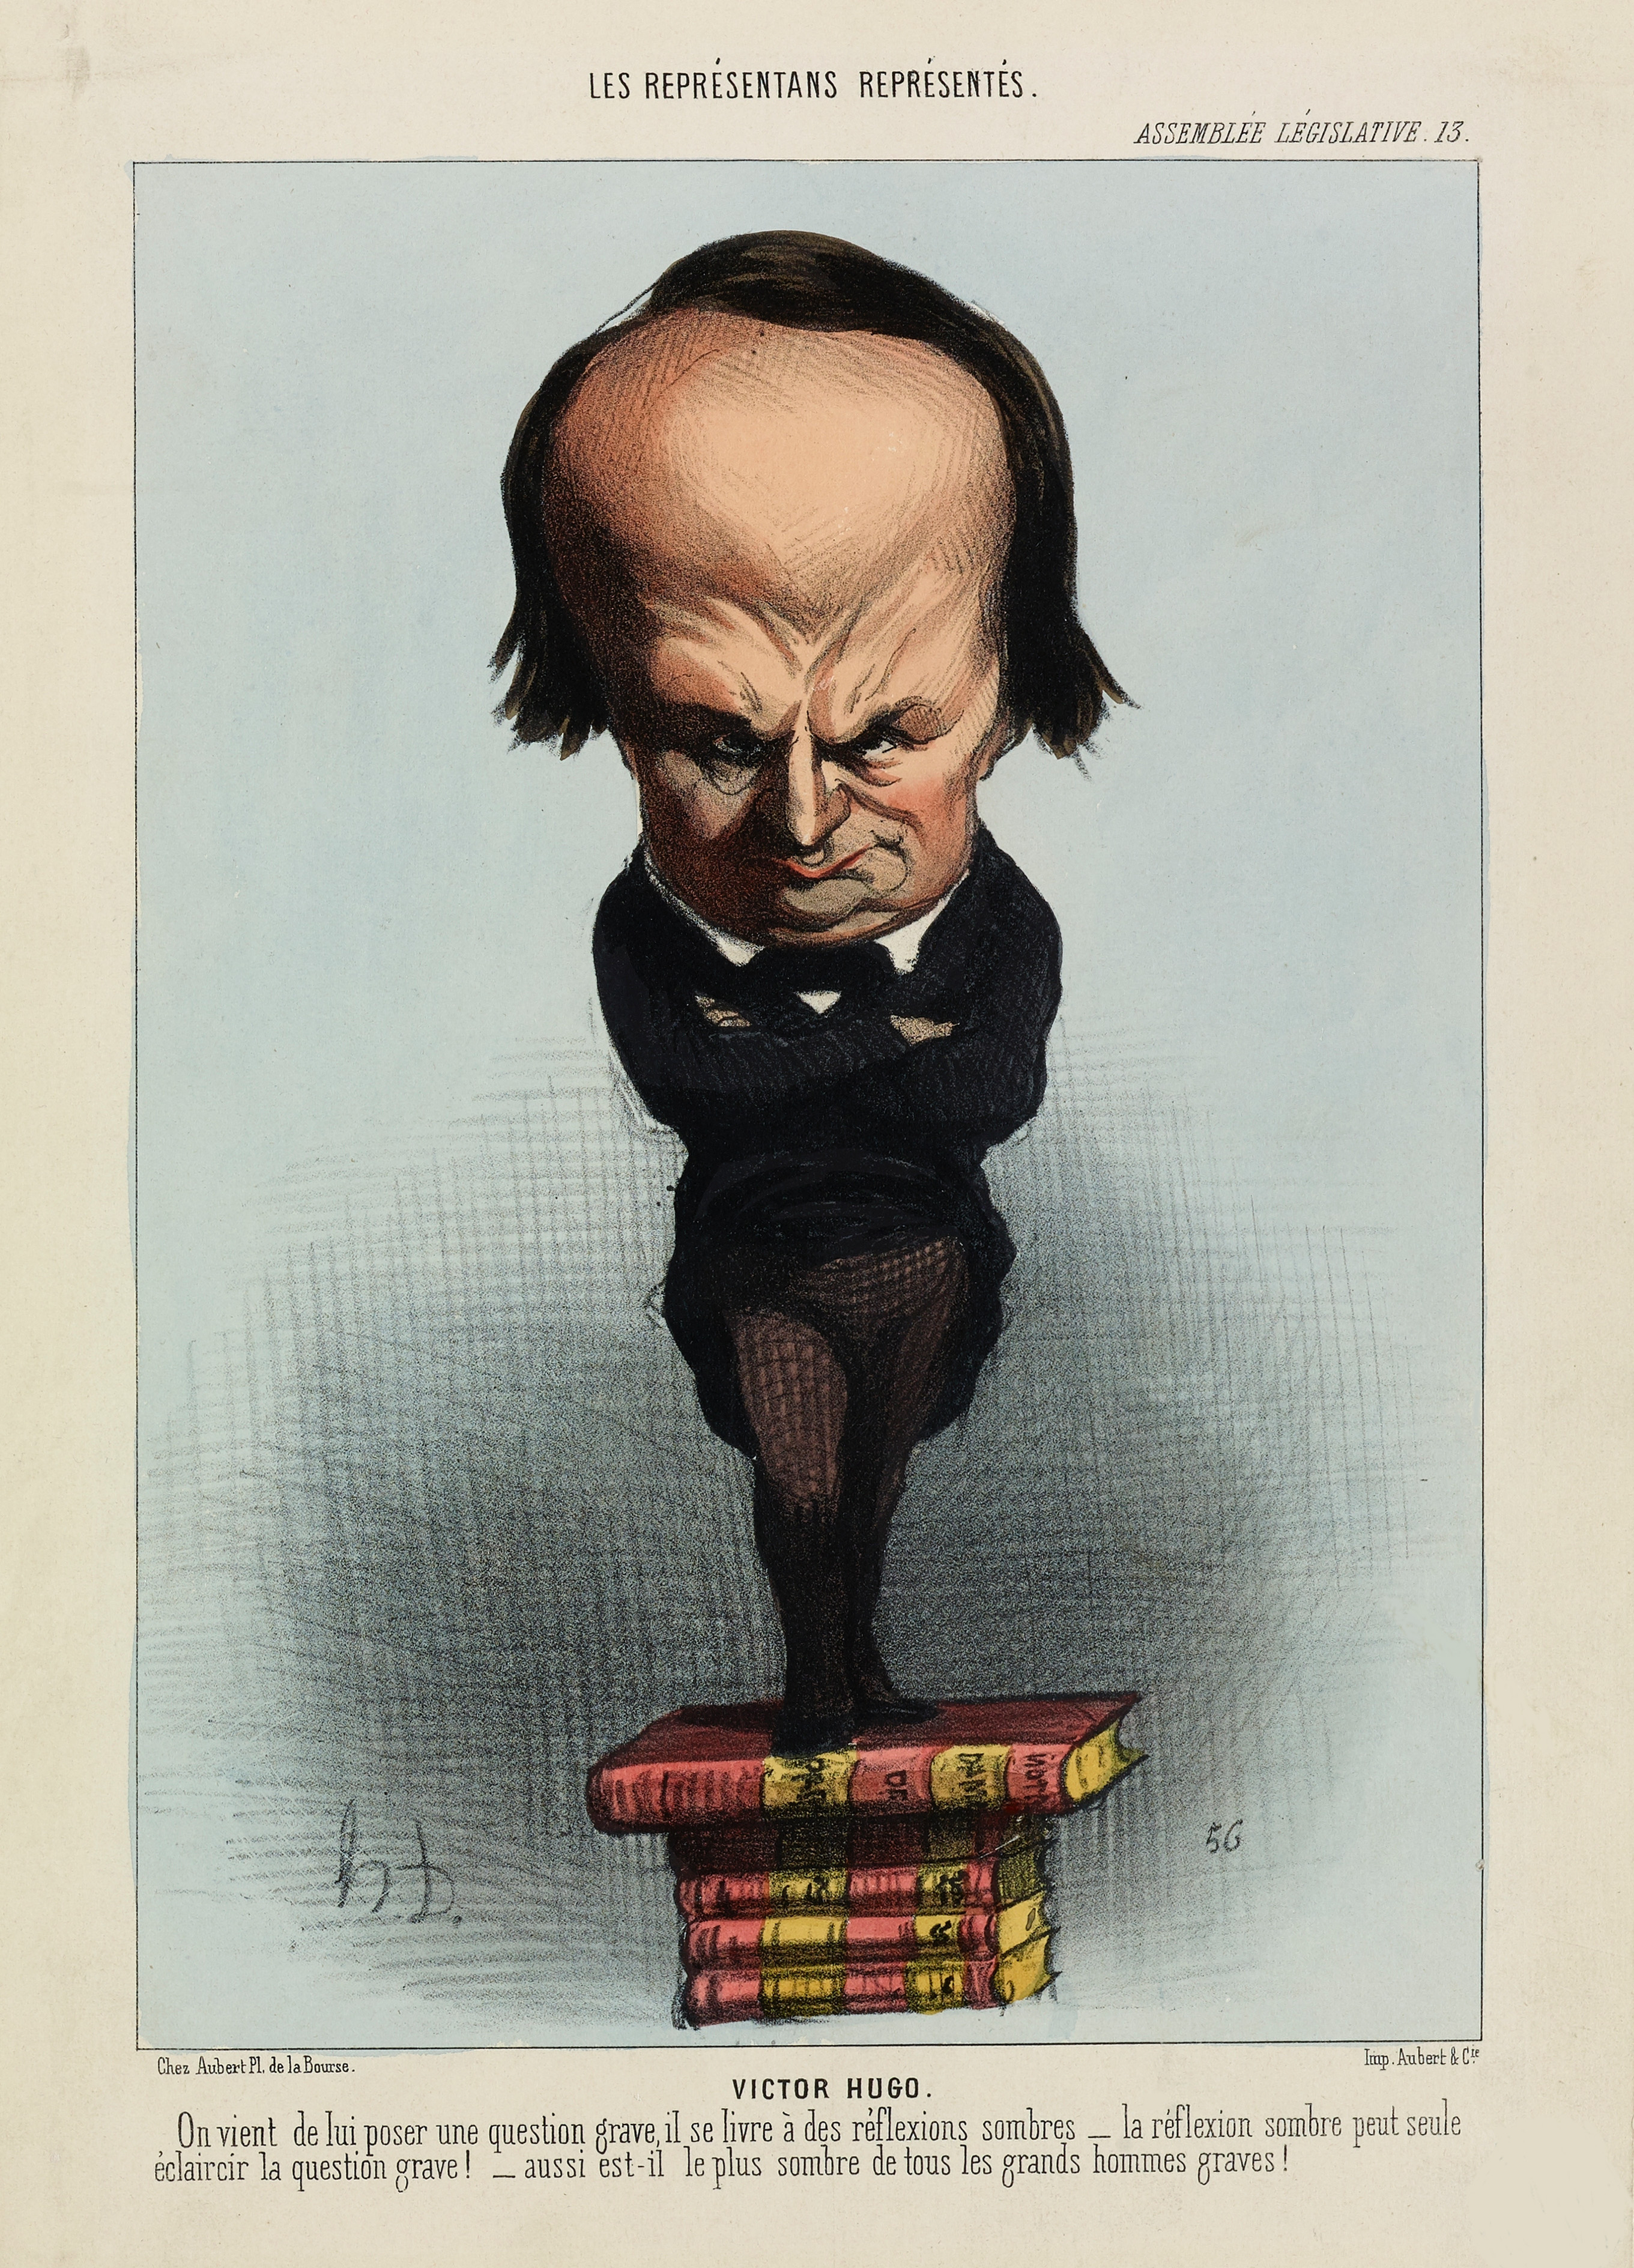 Caricature by Honoré Daumier, at the peak of Hugo's political career: